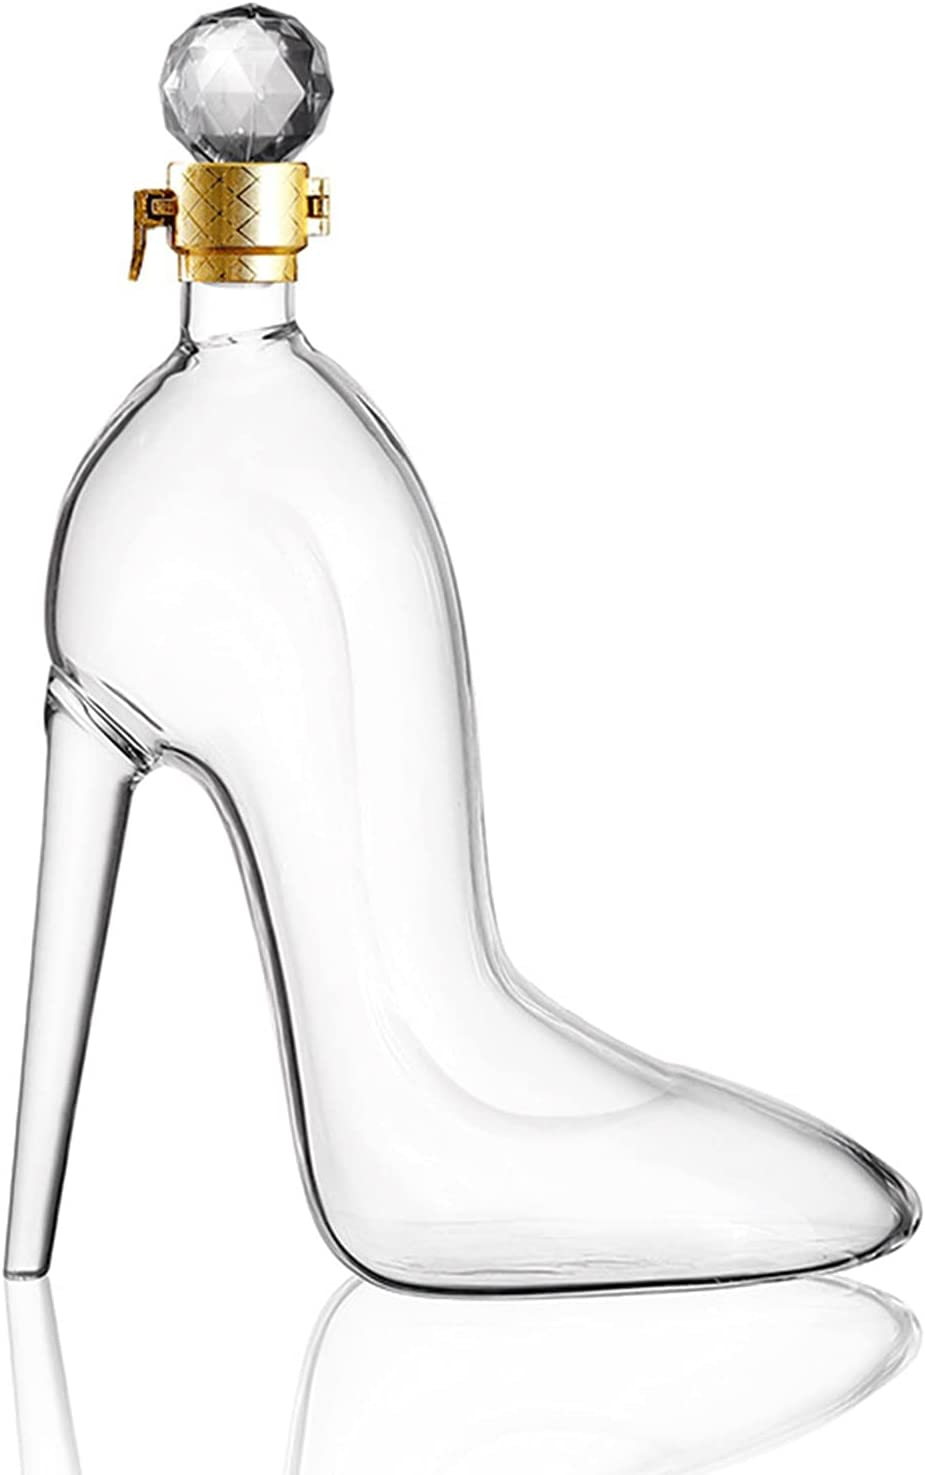 Believesinkinto Store Whiskey Outlet SALE Decanter High Mahogany shaped Heels With